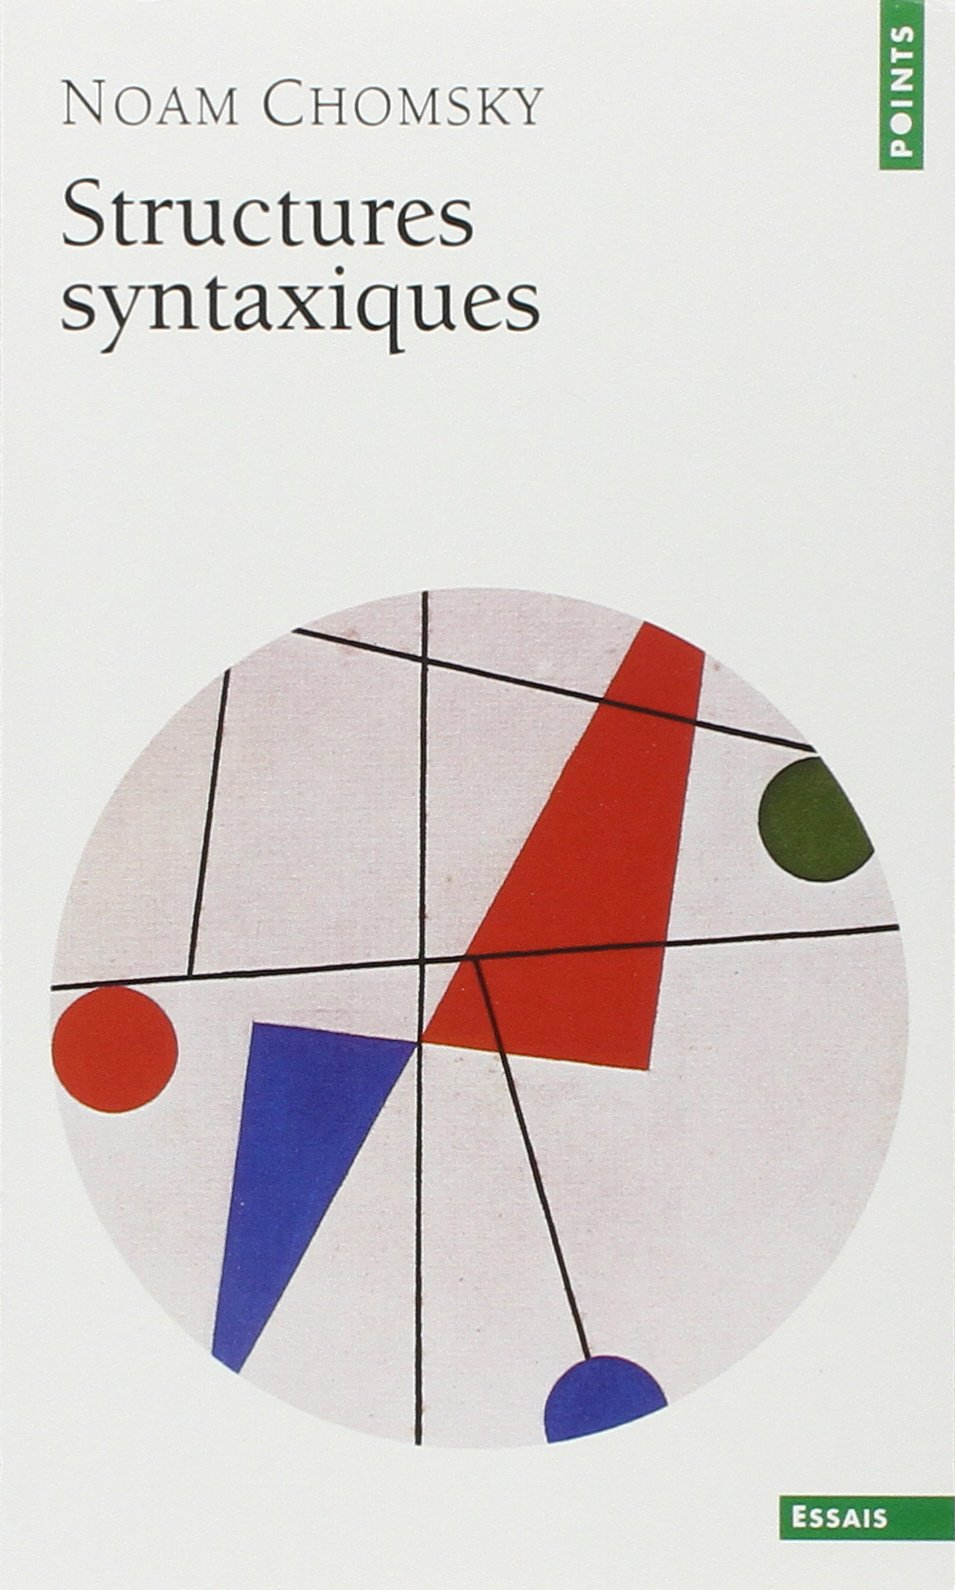 Structures syntaxiques Poche – 1 février 1979 Noam Chomsky Seuil 2020050730 9782020050739_DMEDIA_US